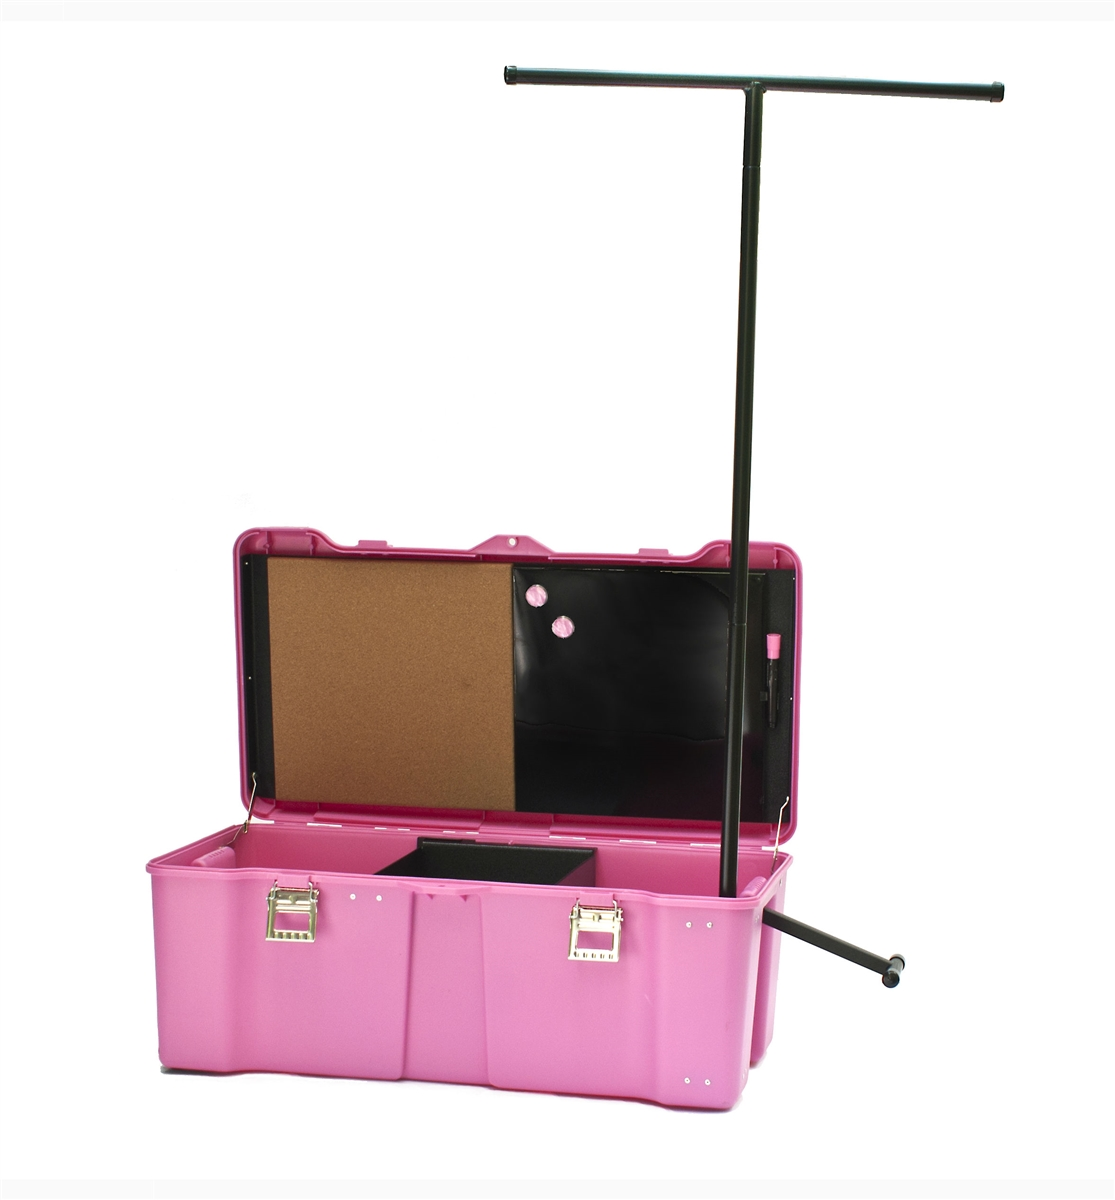 The Caddy Pink Dance Organization From Simply Caddy